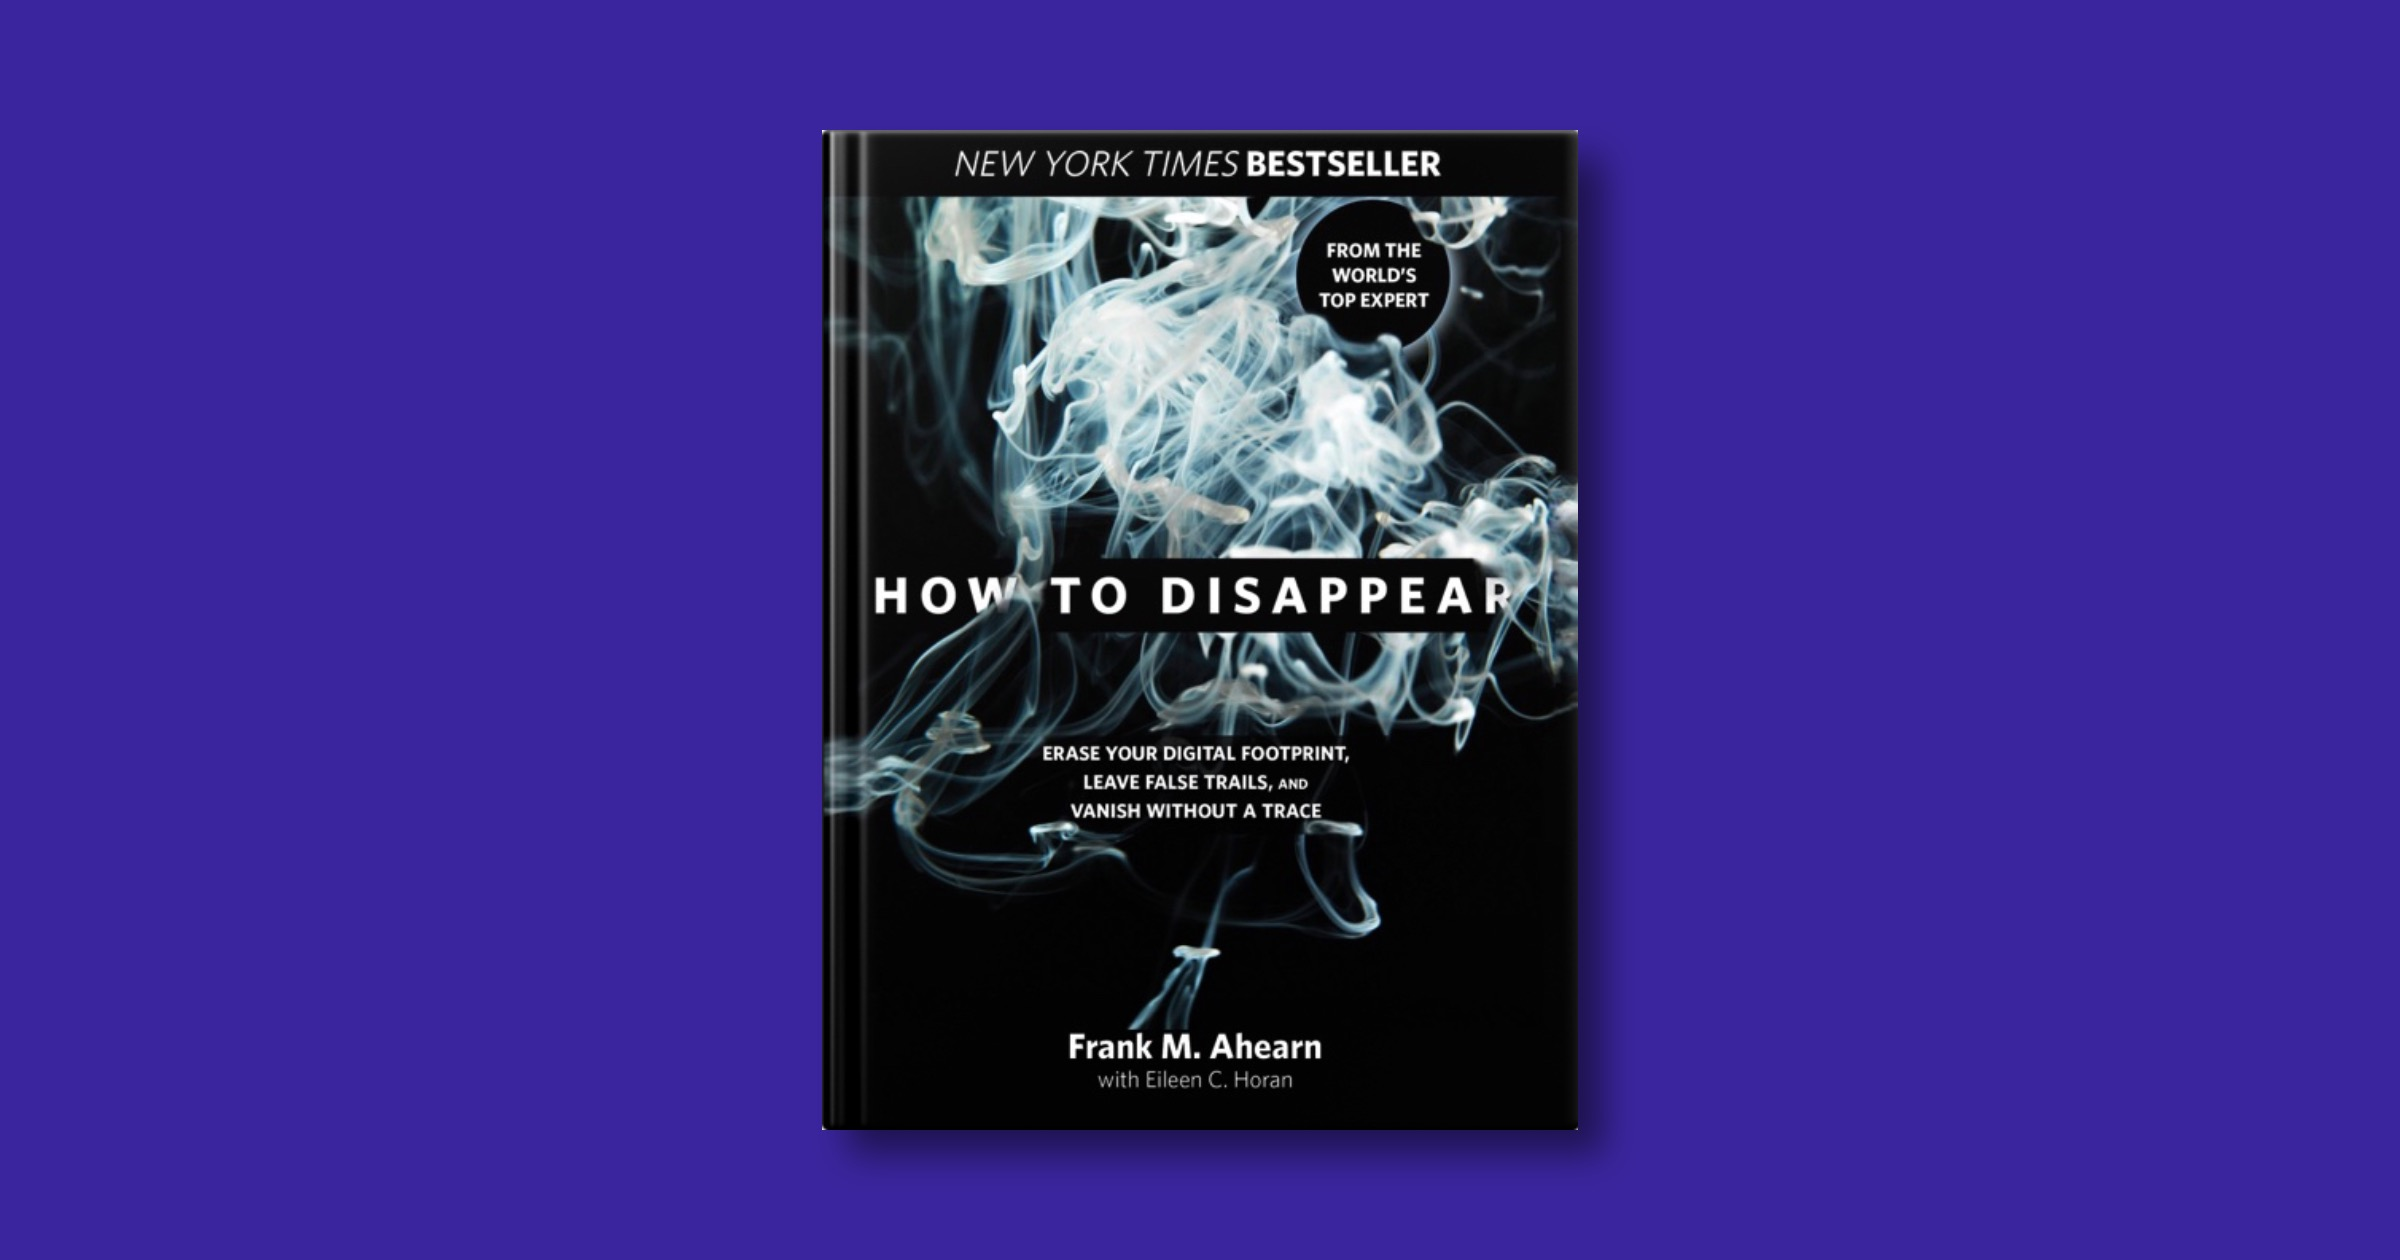 Apple Book Sale: 'How to Disappear' is Only a Dollar